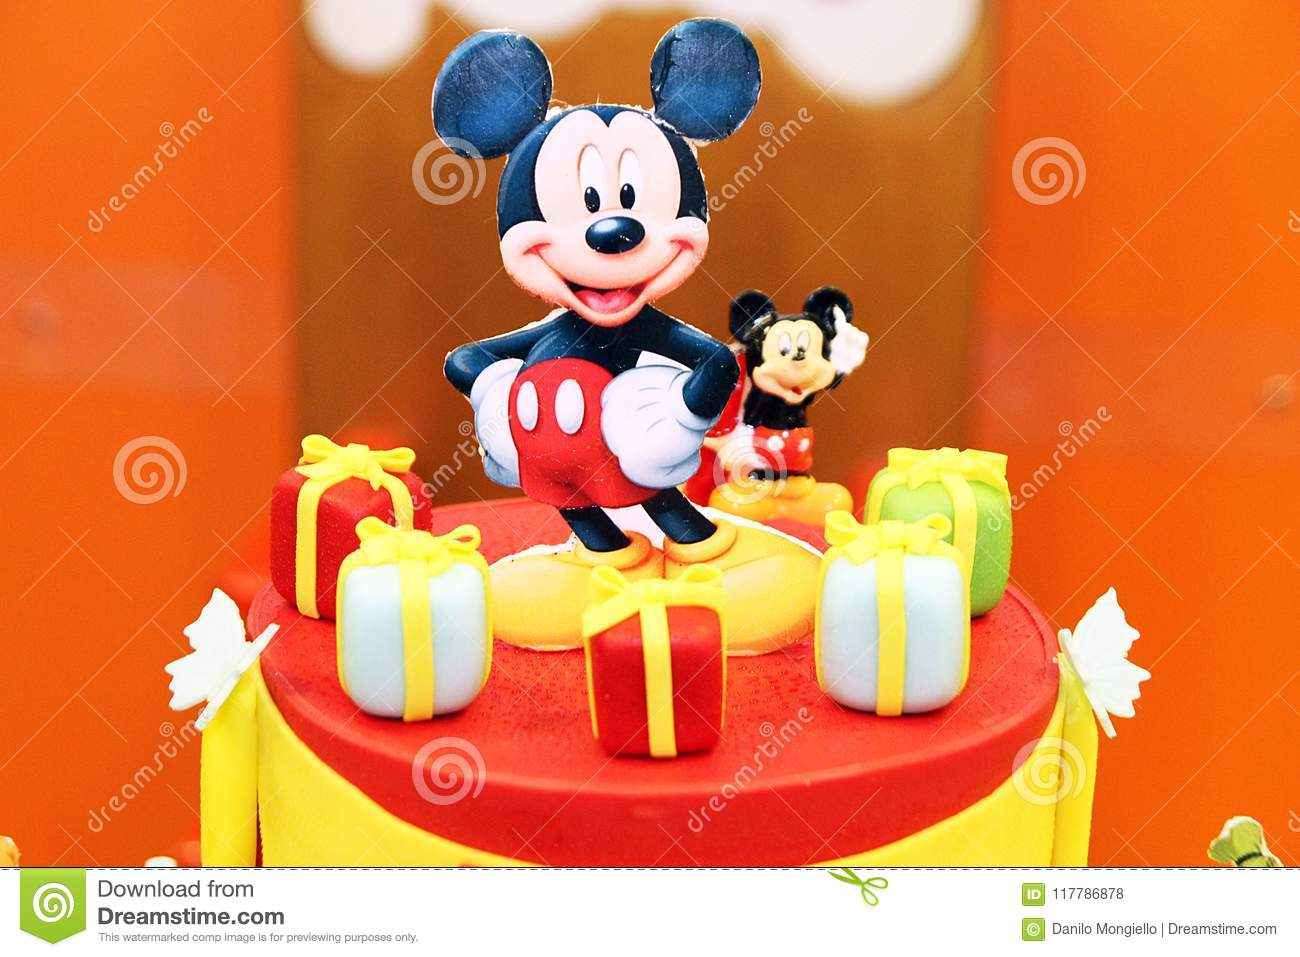 Mickey Mouse Cake Editorial Stock Photo Image Of Children 117786878